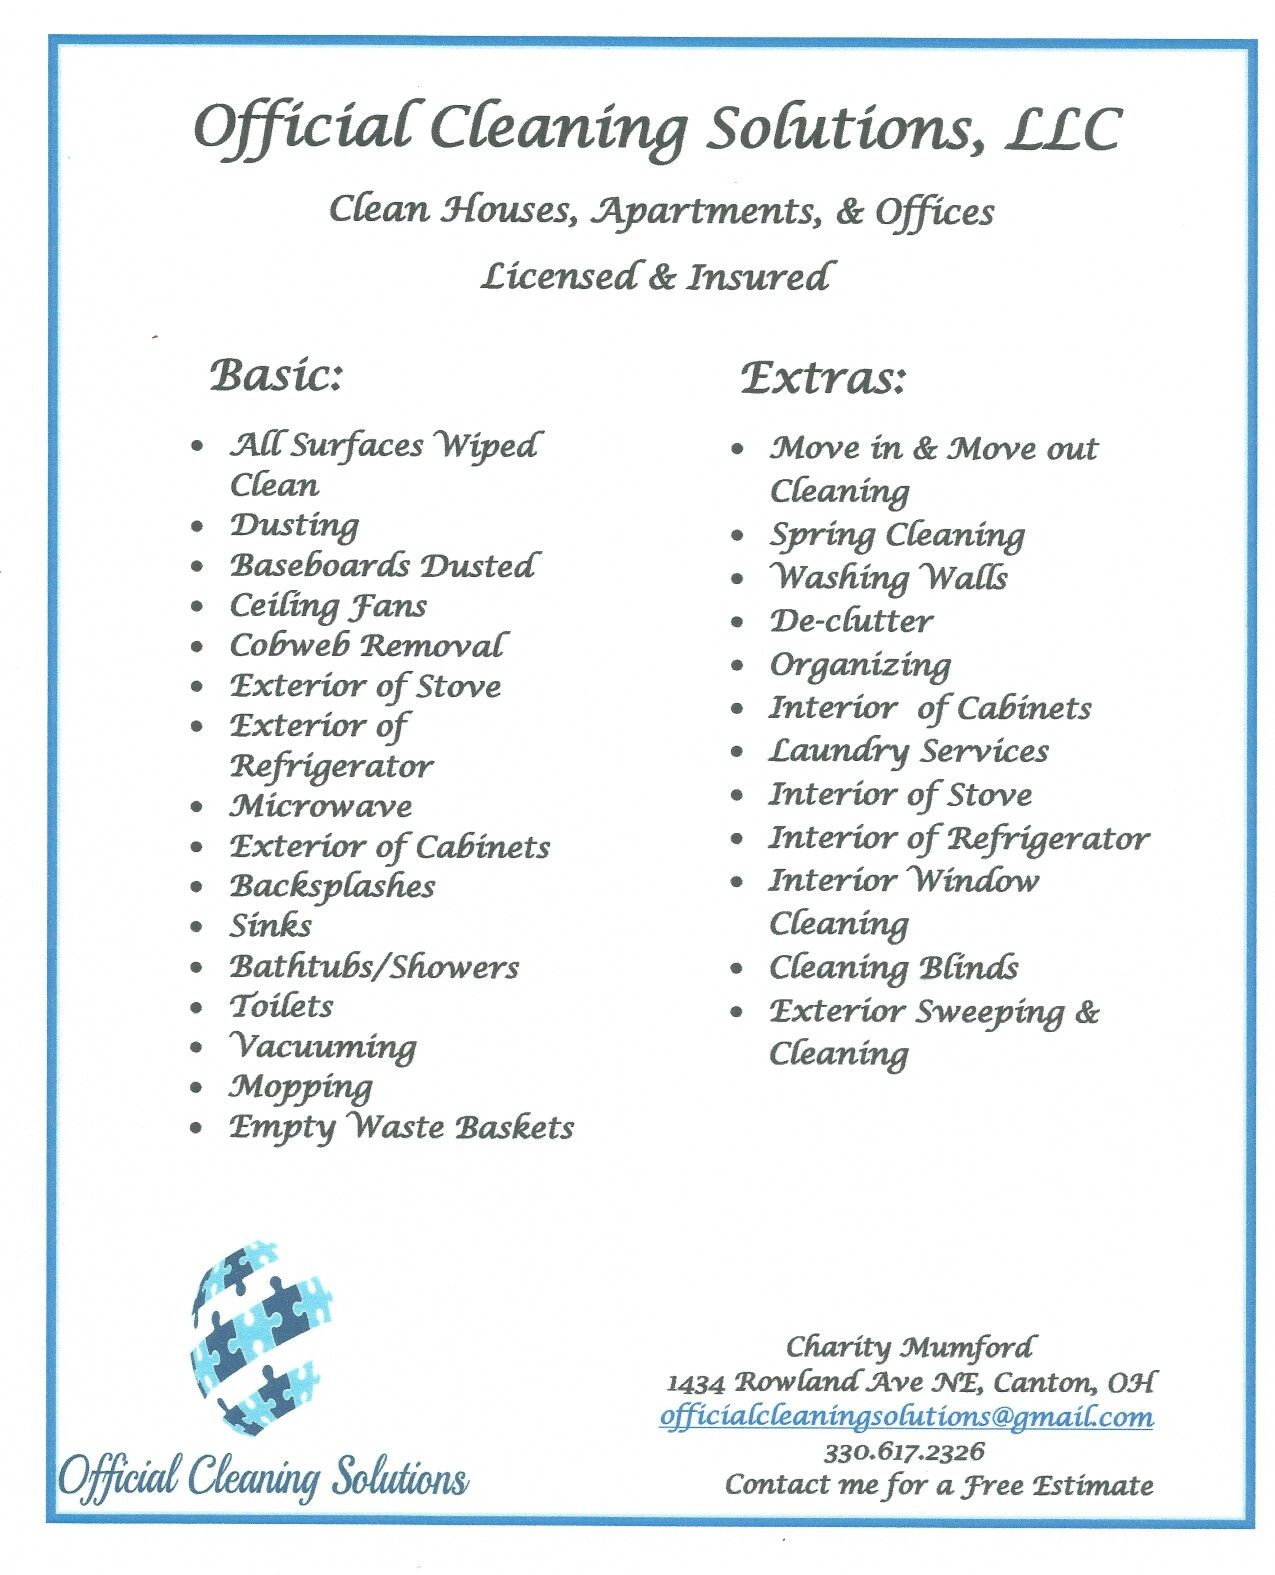 Cleaning Services Cleaning Business House Cleaning Prices